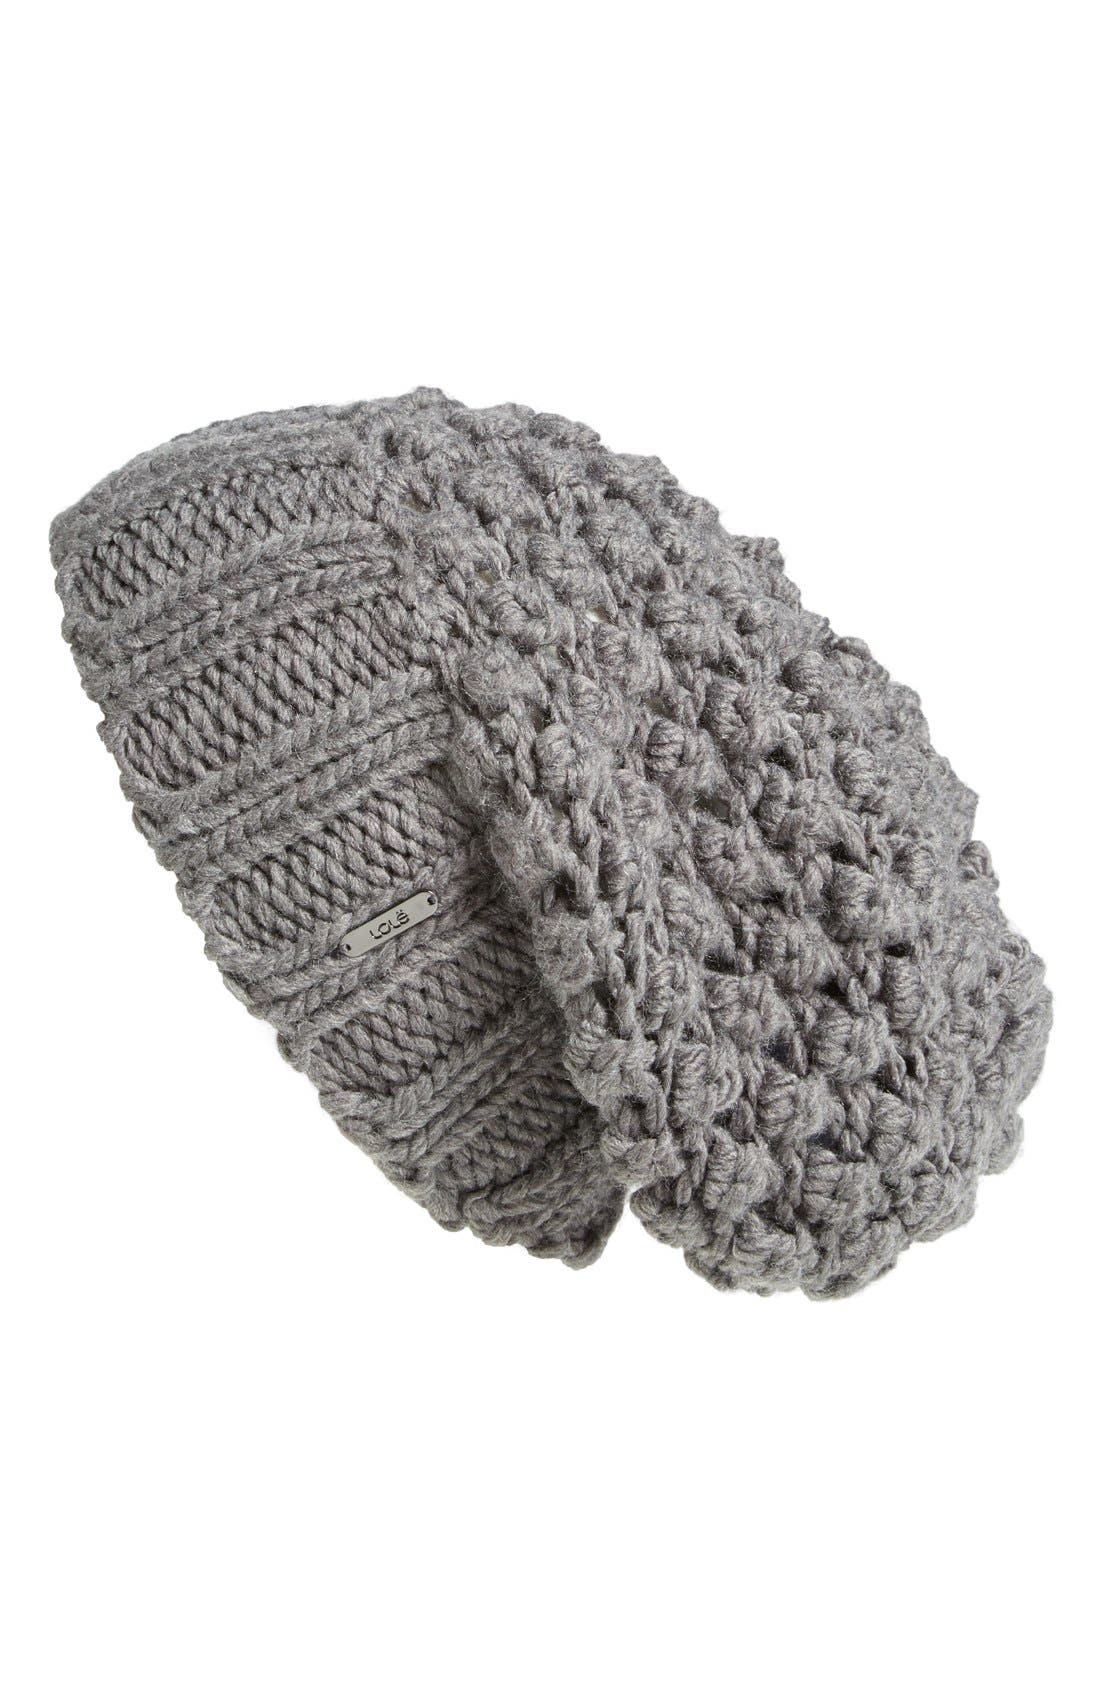 Alternate Image 1 Selected - Lole Popcorn Knit Beanie